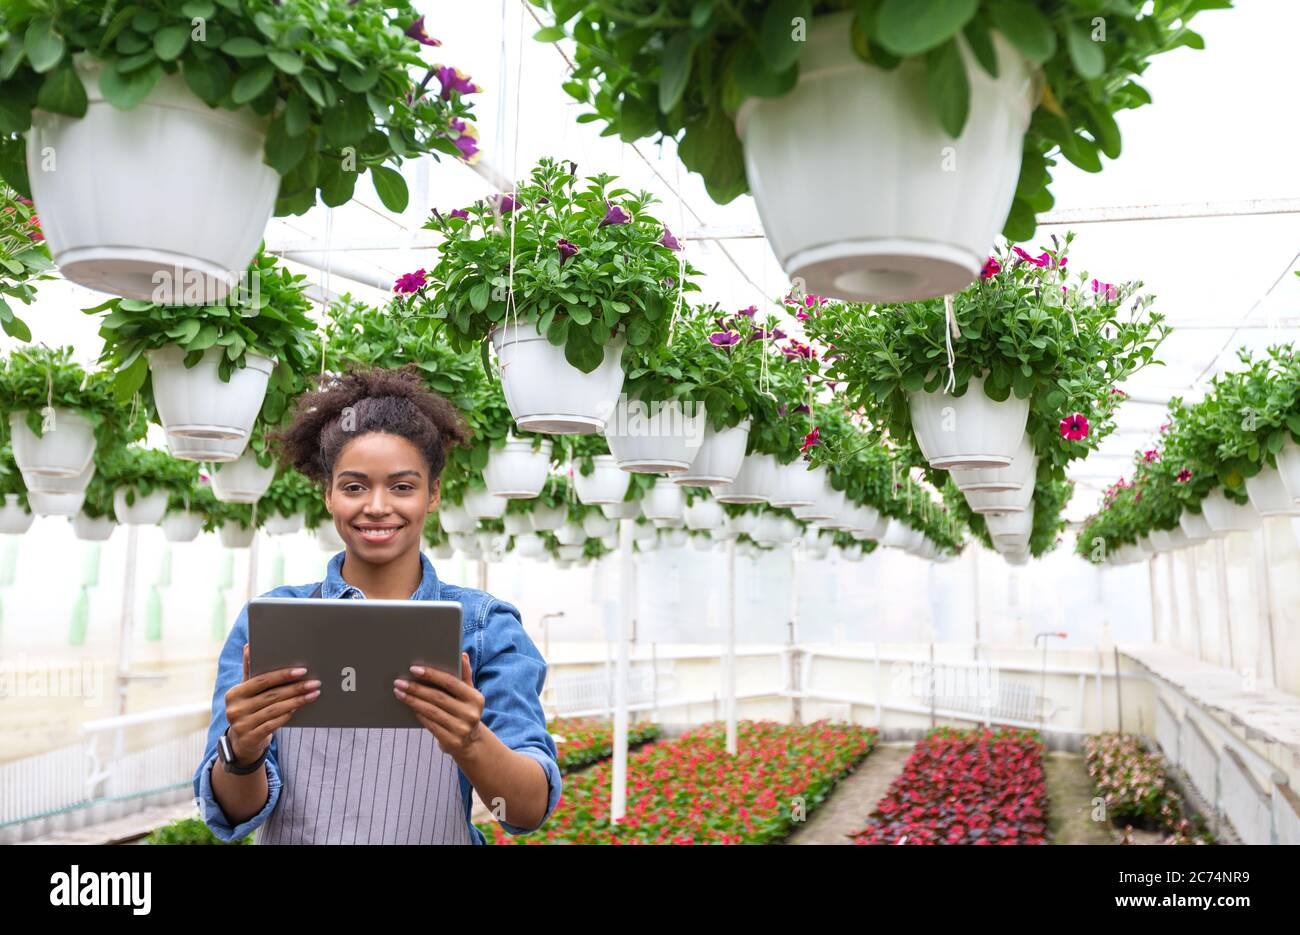 Gardener and work in greenhouse. Girl with digital tablet in hands, stands on flower plantation and potted plants hanging from ceiling Stock Photo